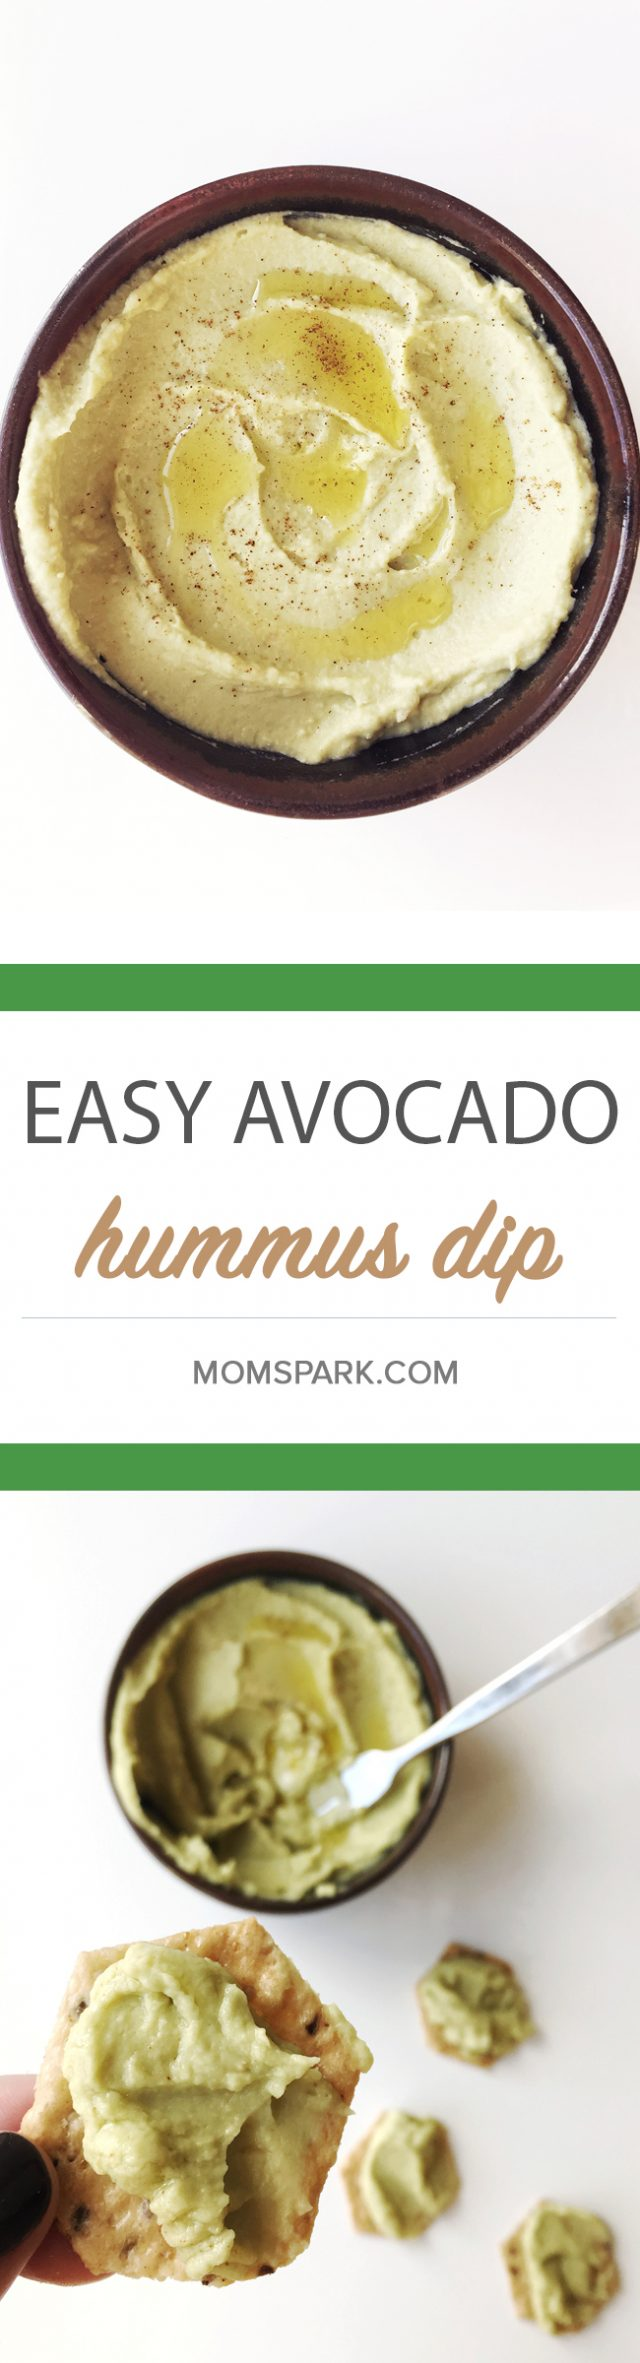 Easy Creamy Avocado Hummus Dip Recipe